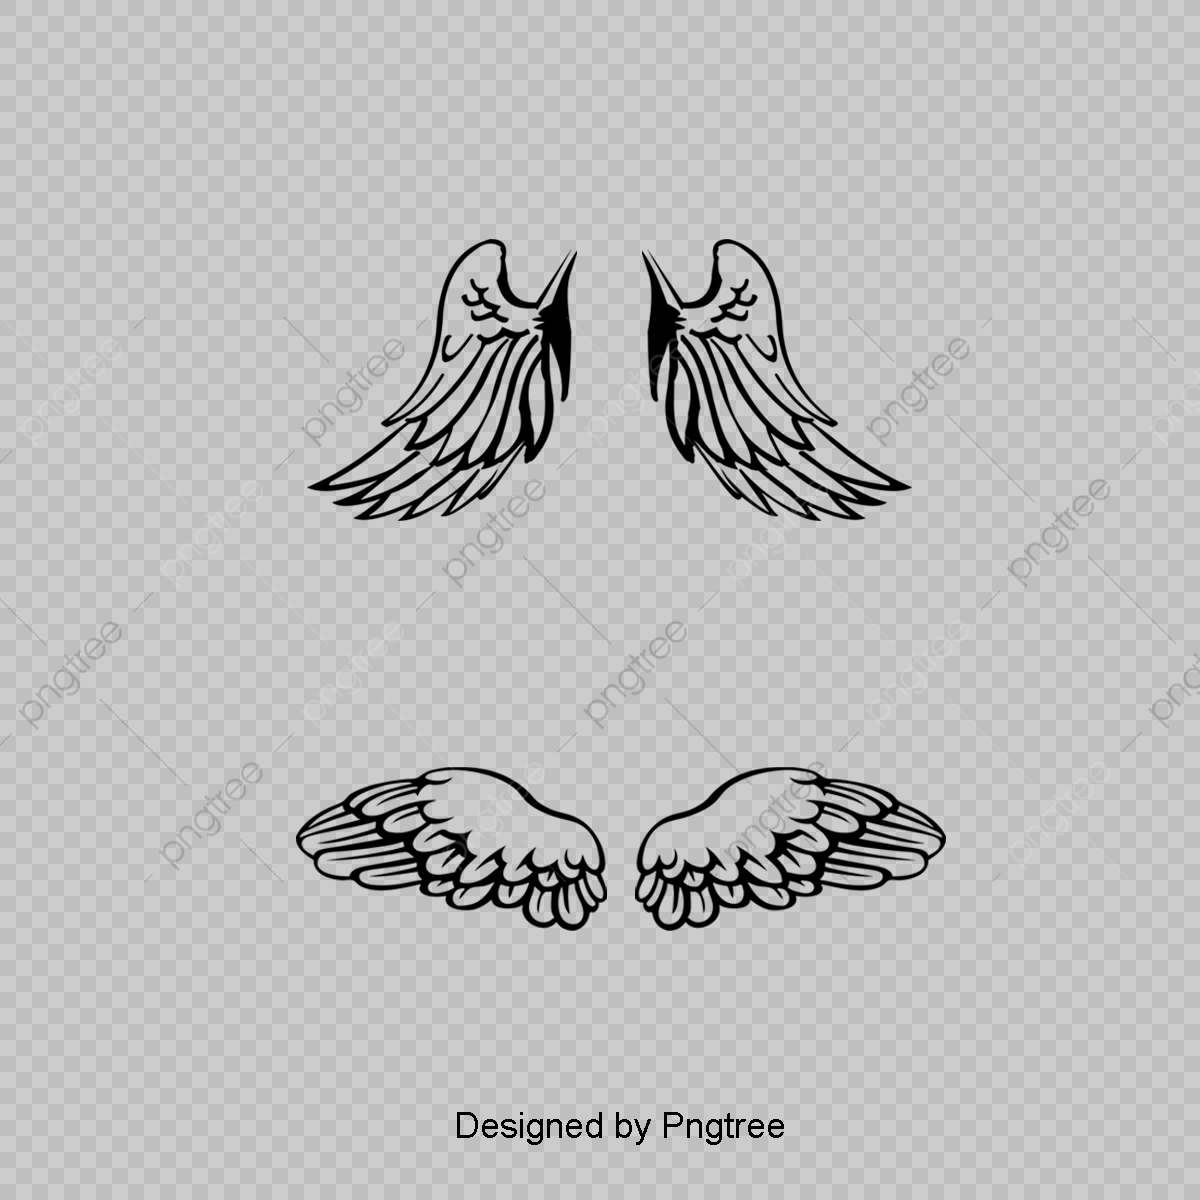 Cartoon Angel Wings Black Line Element Simple Hand Painted Cartoon Png Transparent Clipart Image And Psd File For Free Download